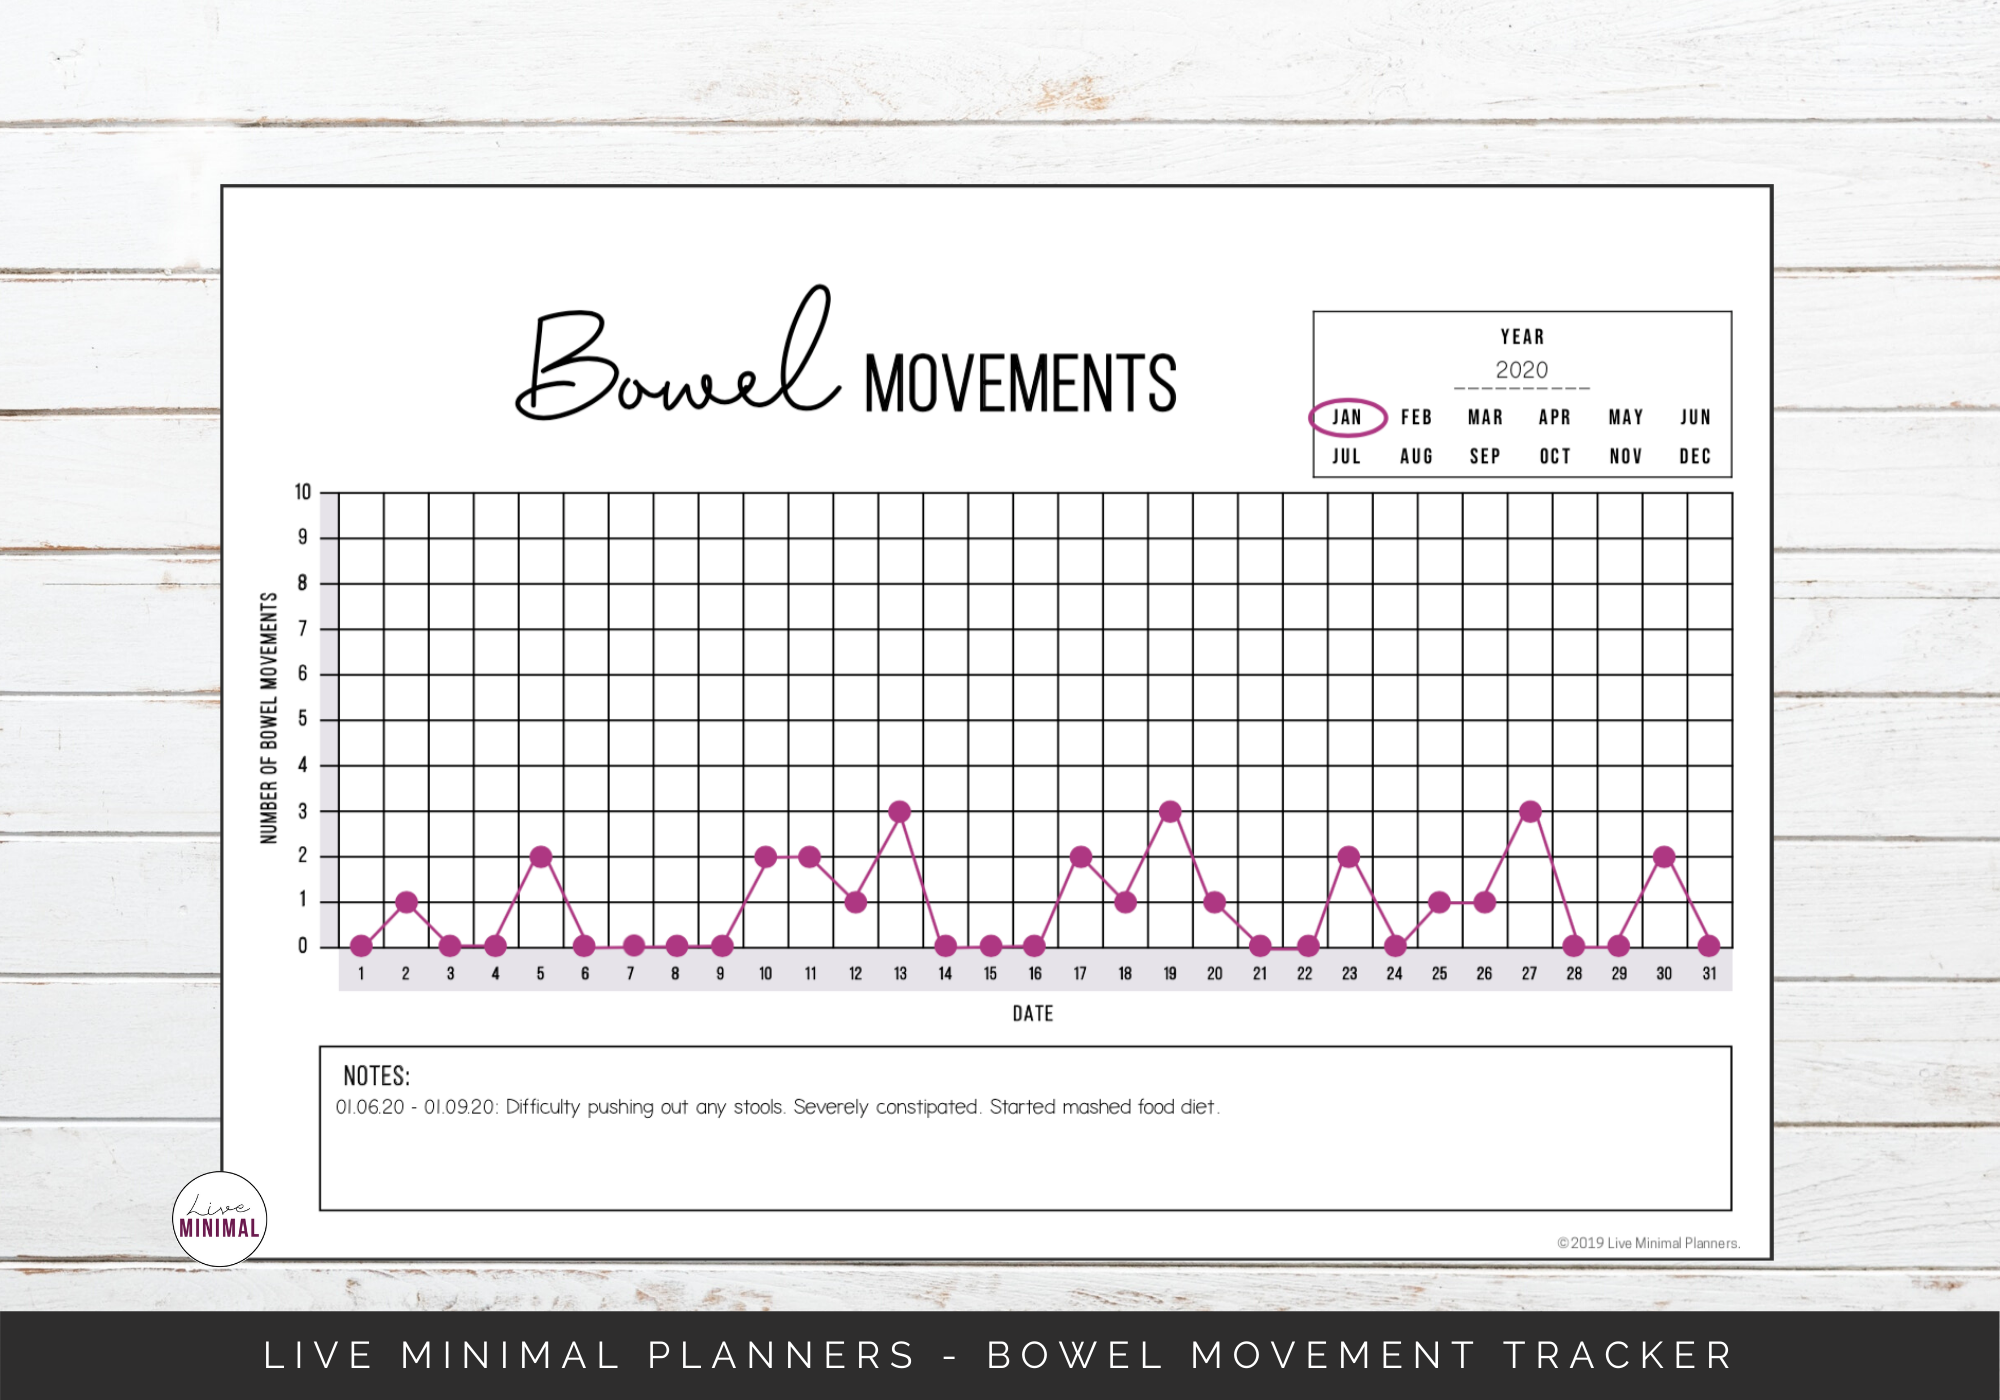 Bowel Movement Trackers